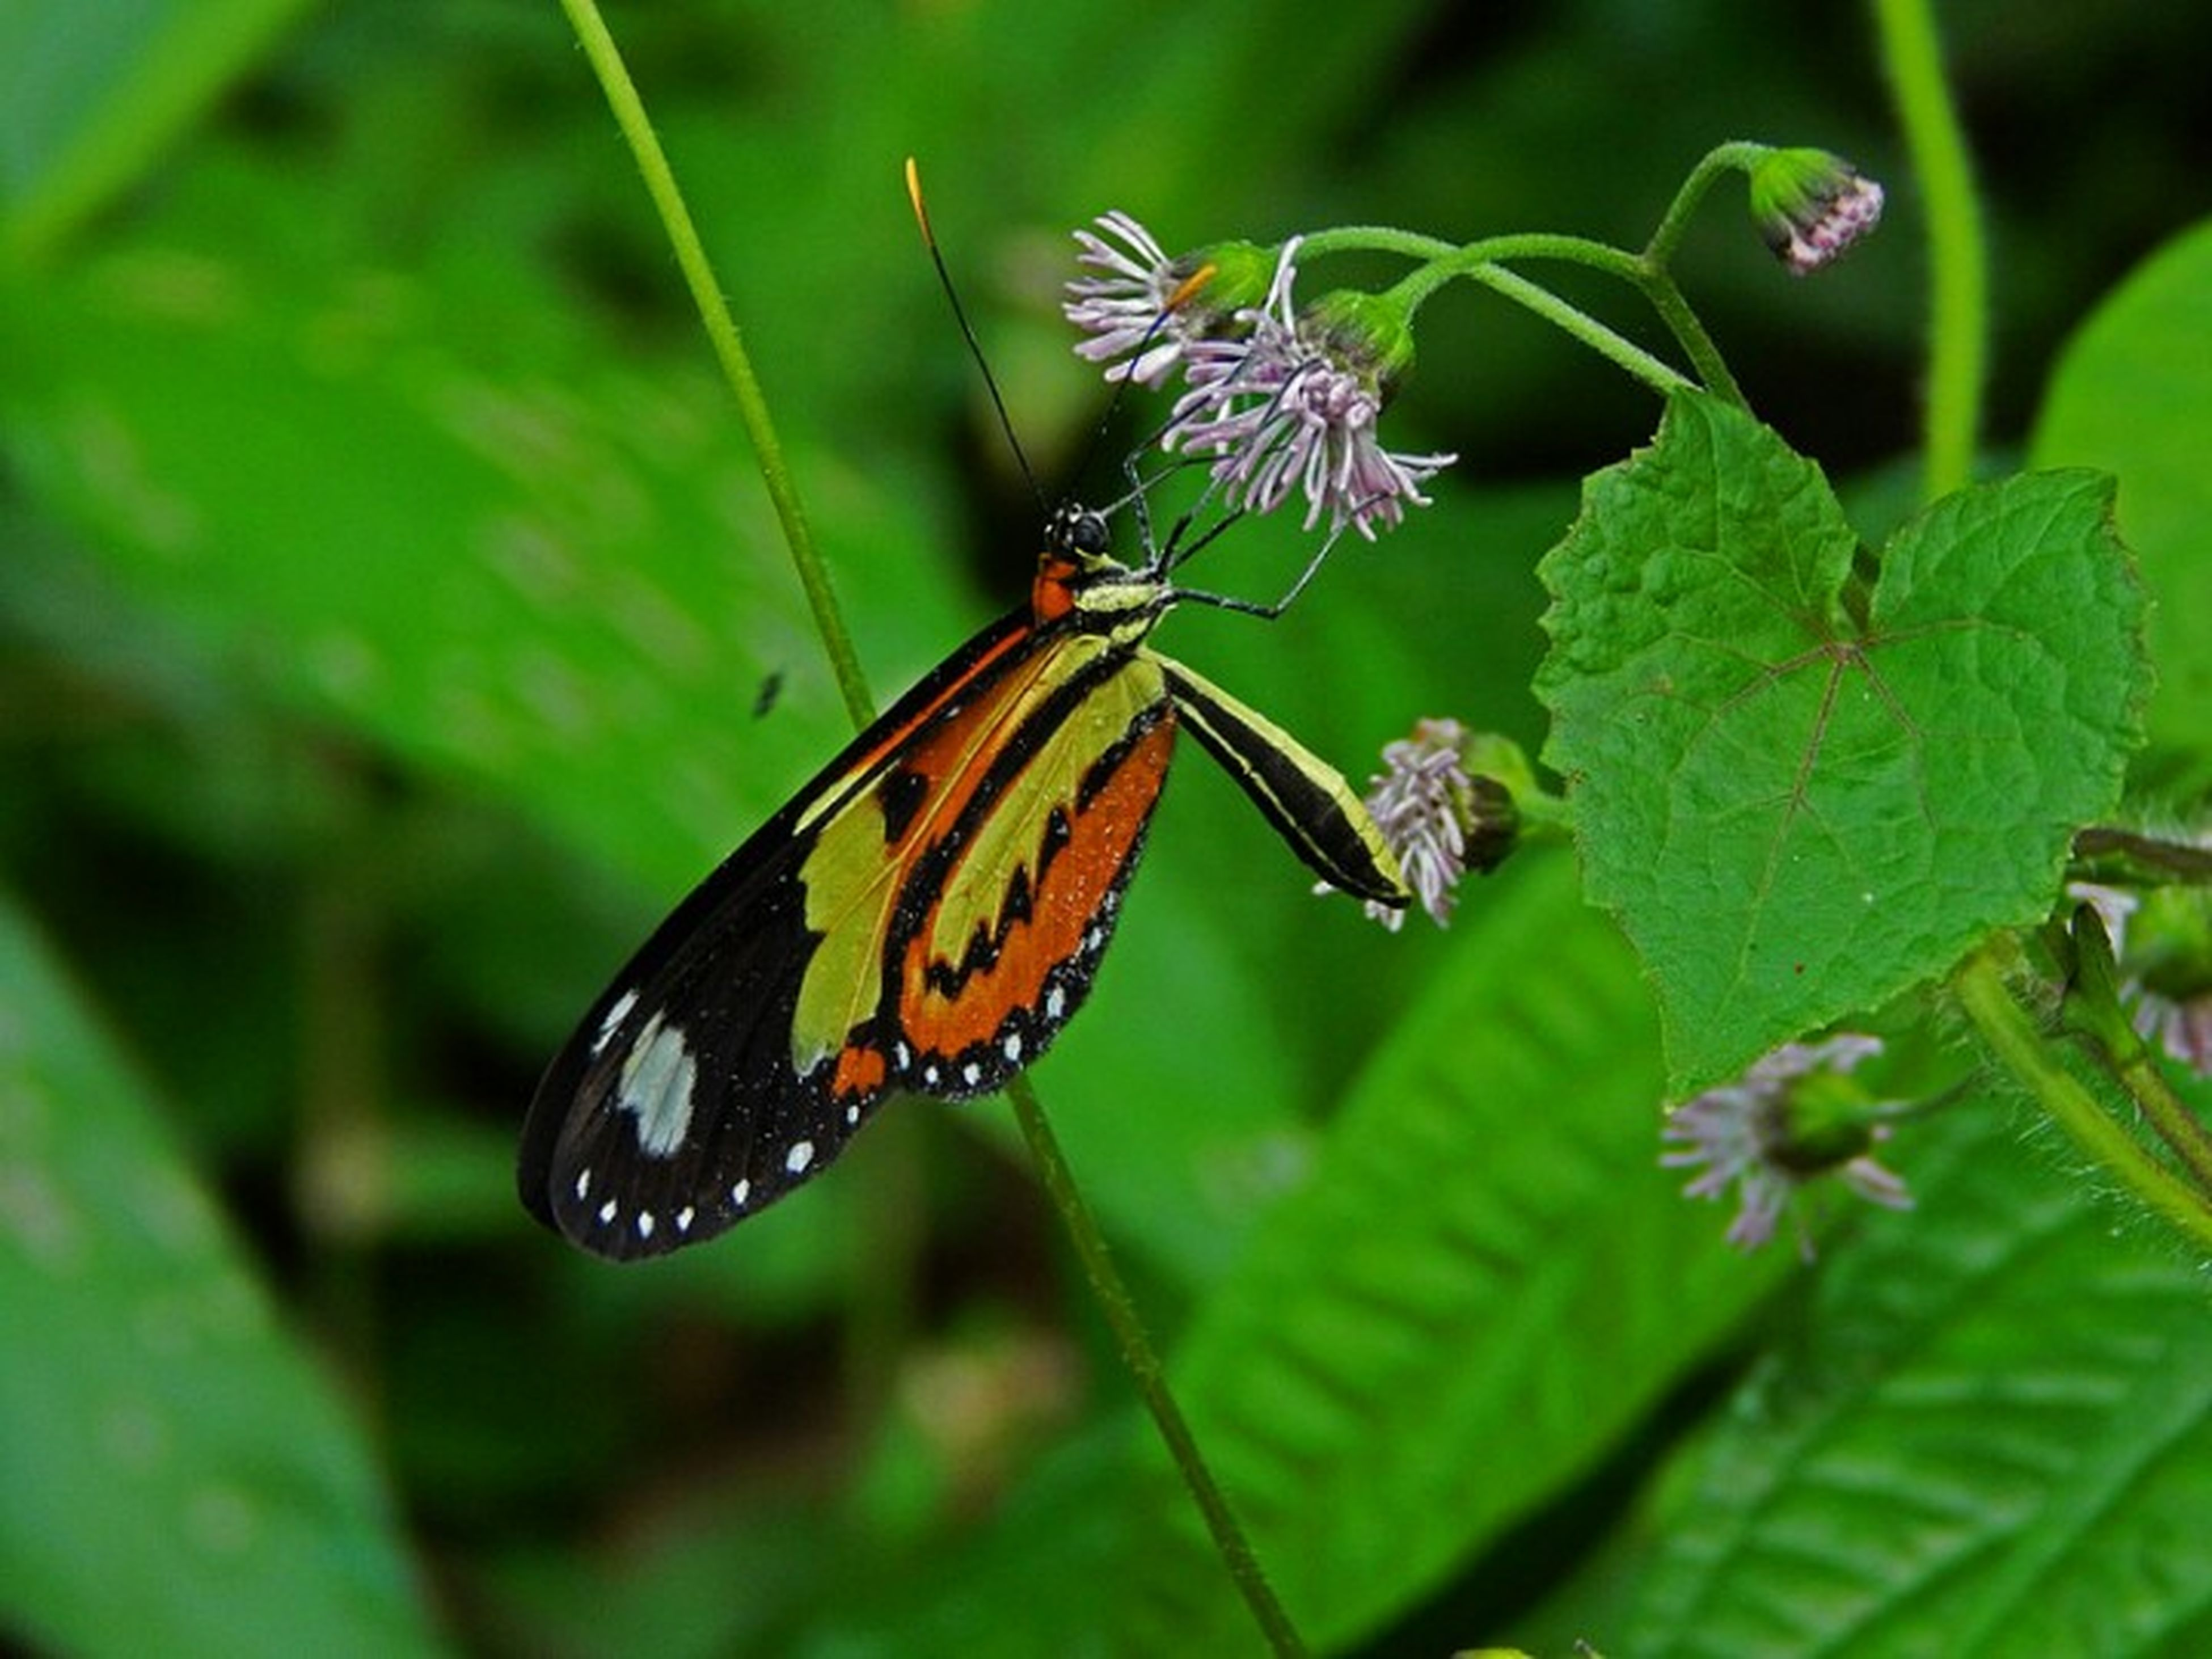 insect, animals in the wild, animal themes, one animal, butterfly - insect, wildlife, butterfly, flower, focus on foreground, leaf, close-up, fragility, plant, animal markings, beauty in nature, growth, animal wing, nature, green color, freshness